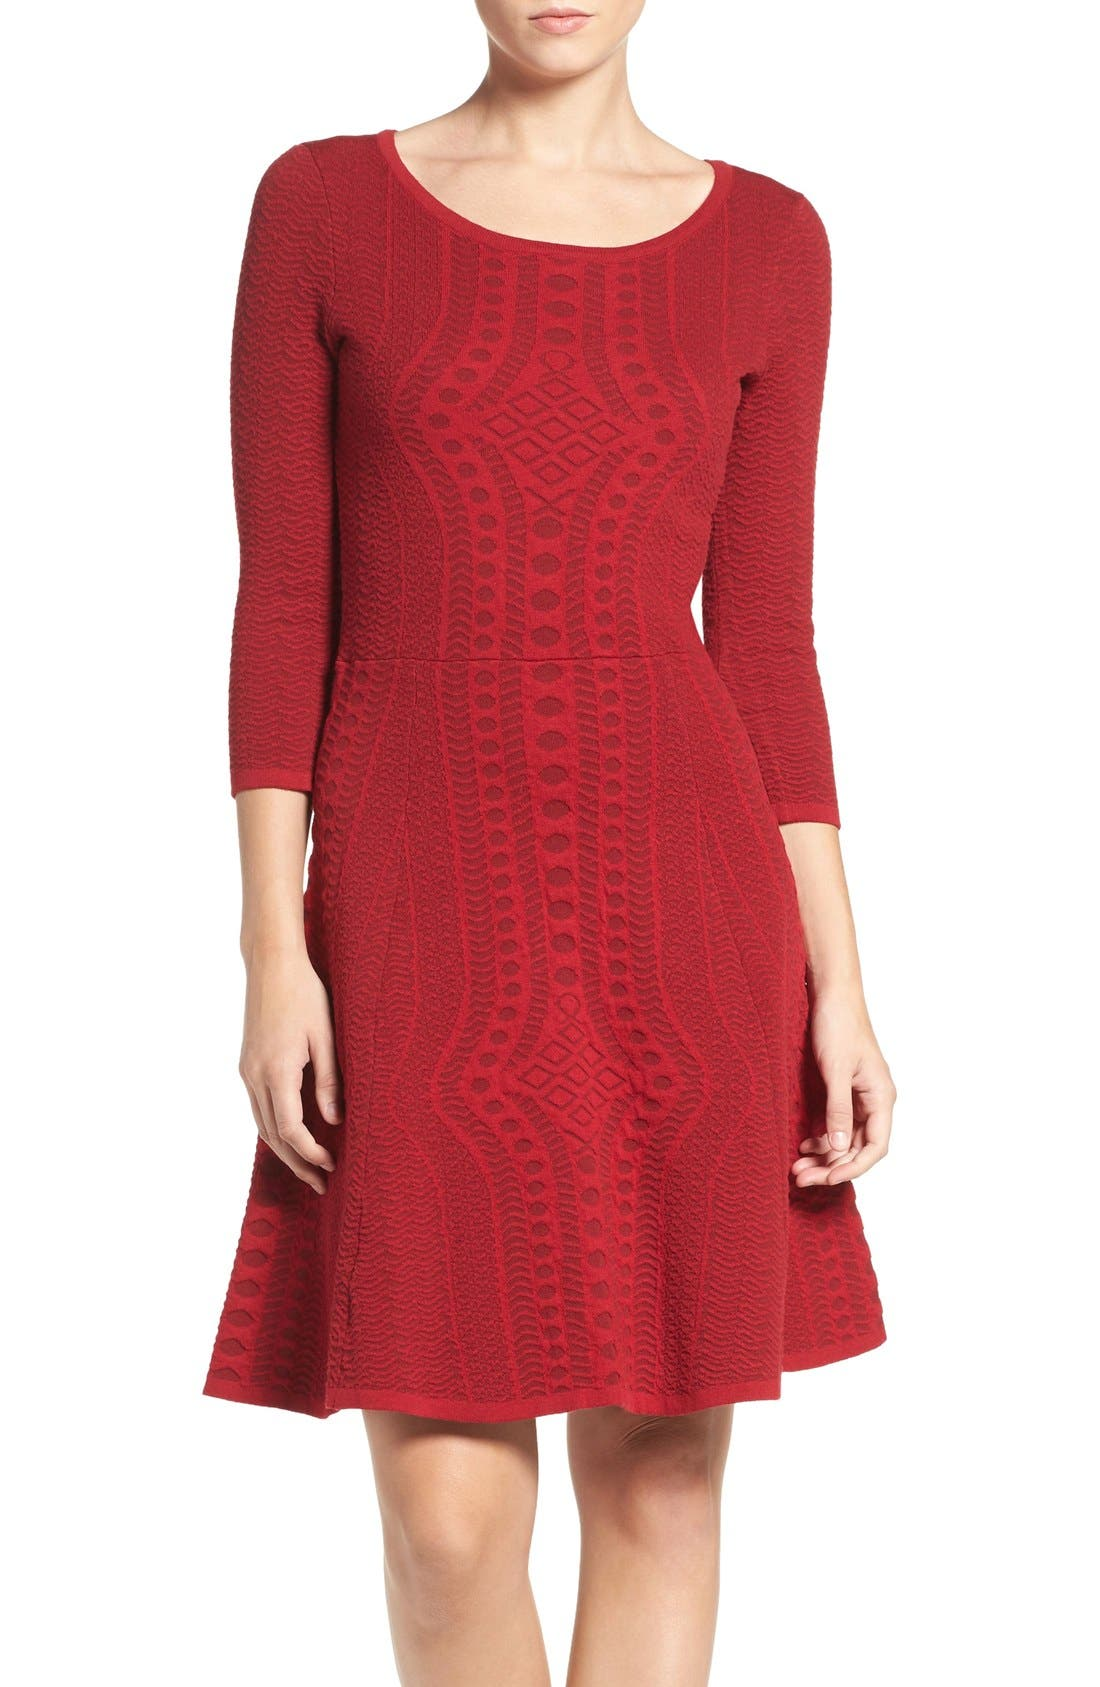 Alternate Image 1 Selected - Gabby Skye Fit & Flare Sweater Dress